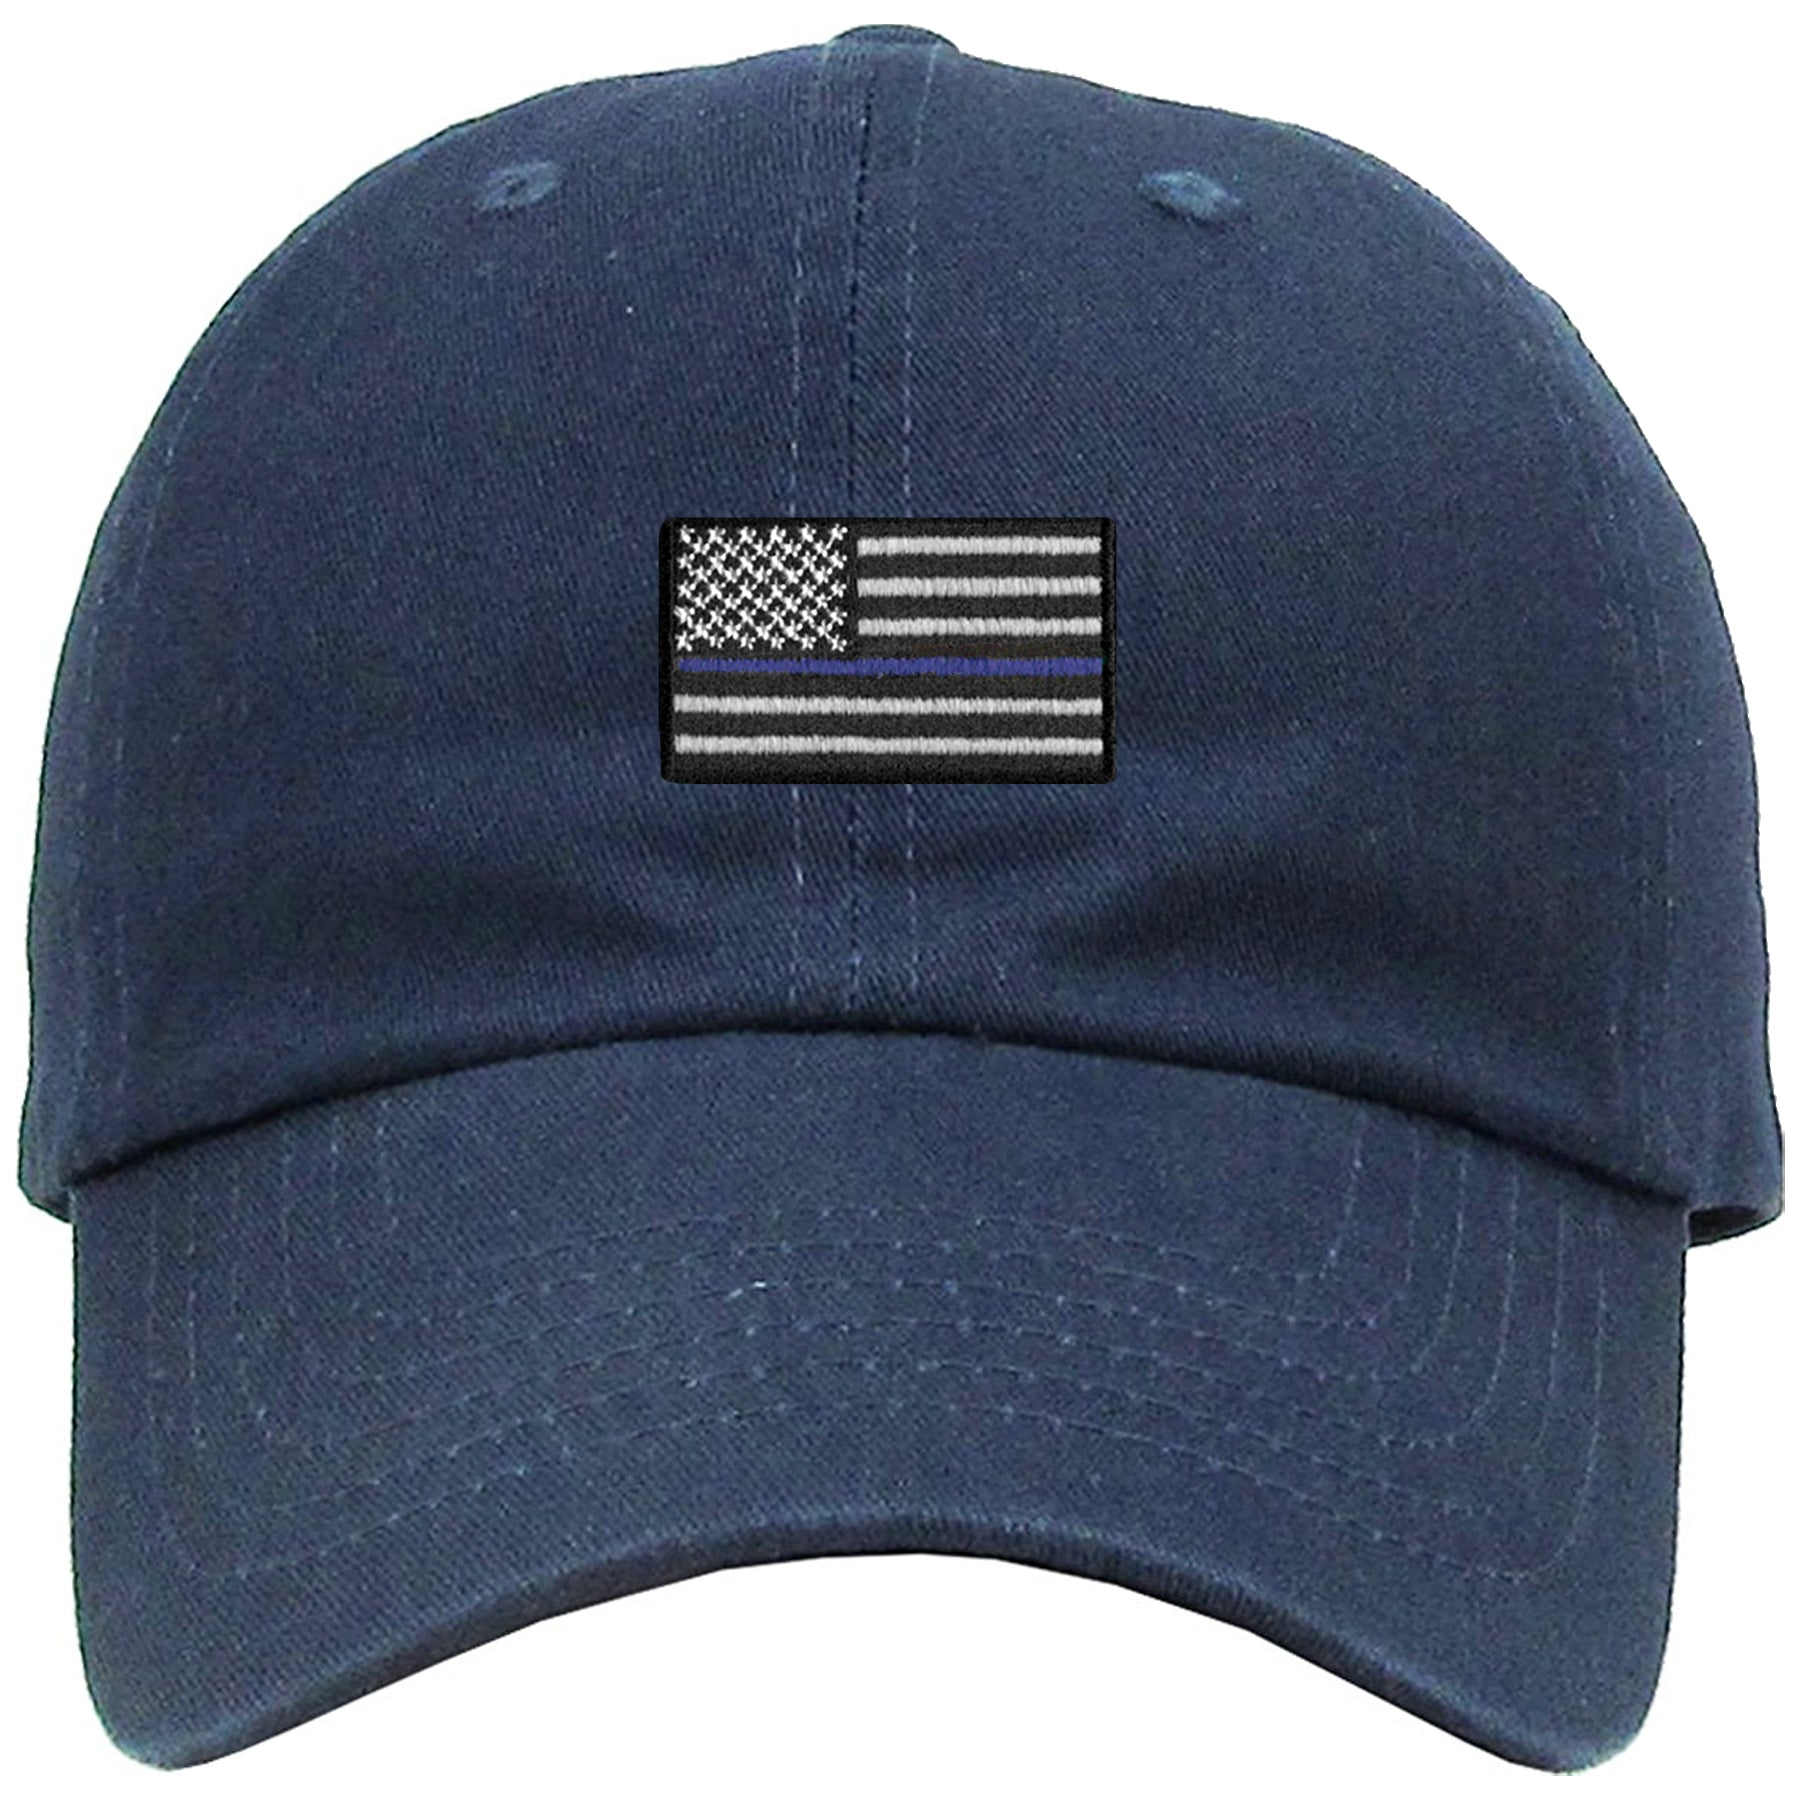 the front of the navy blue lives matter dad hat has the thin blue line  police 9e2214a7053